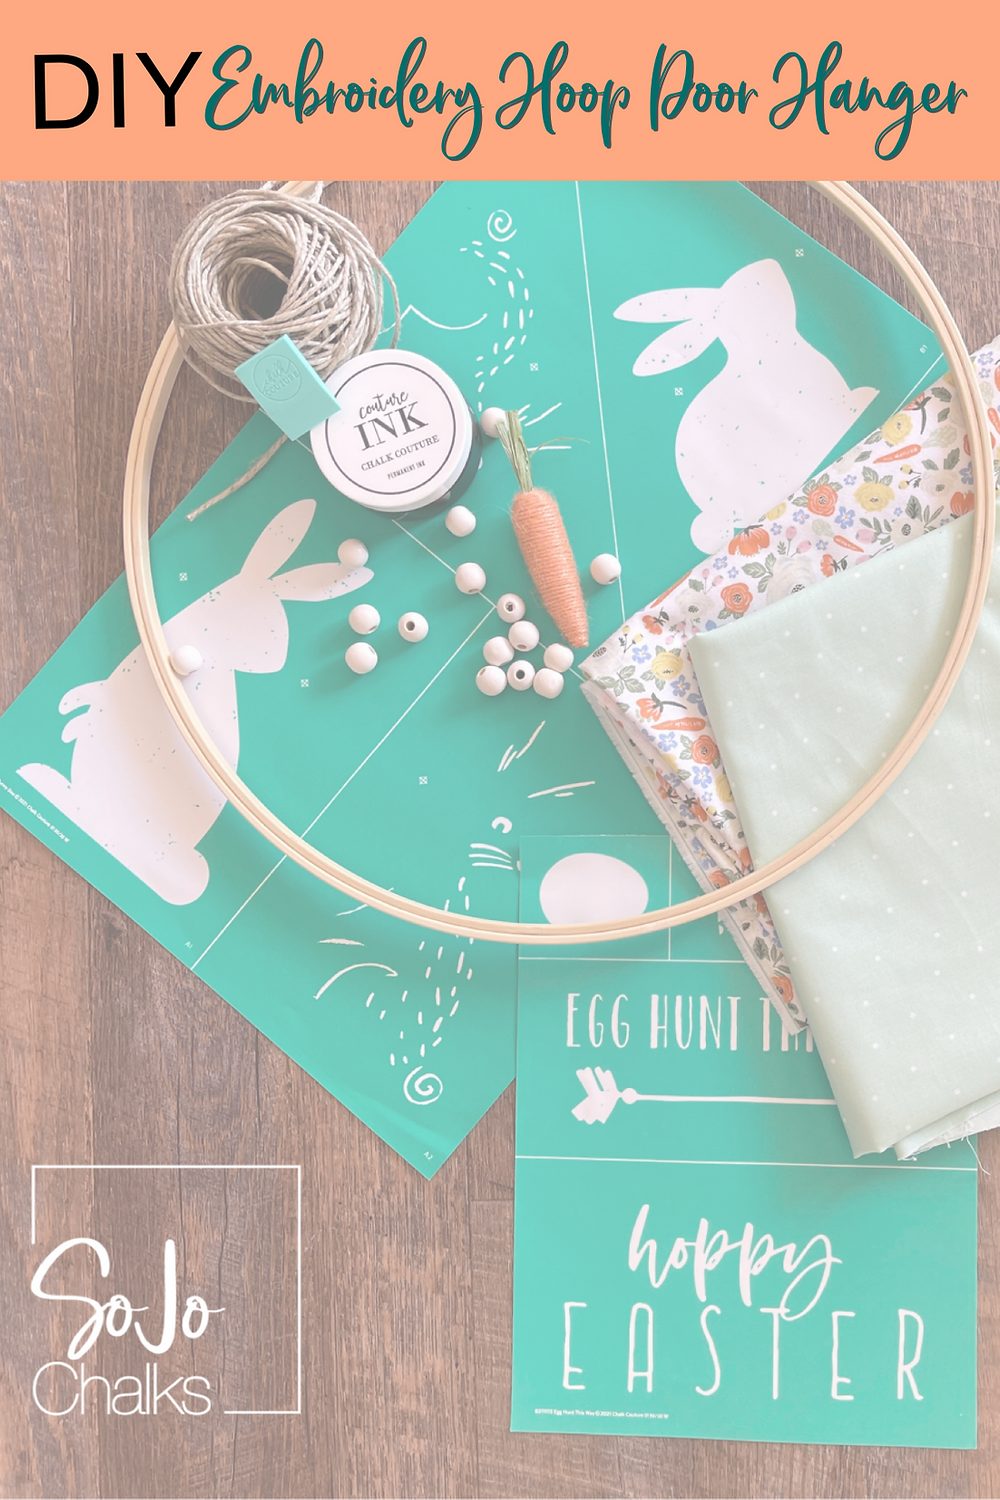 DIY Embroidery Hoop Door Hanger Project | SojoChalks.com | Chalk Couture